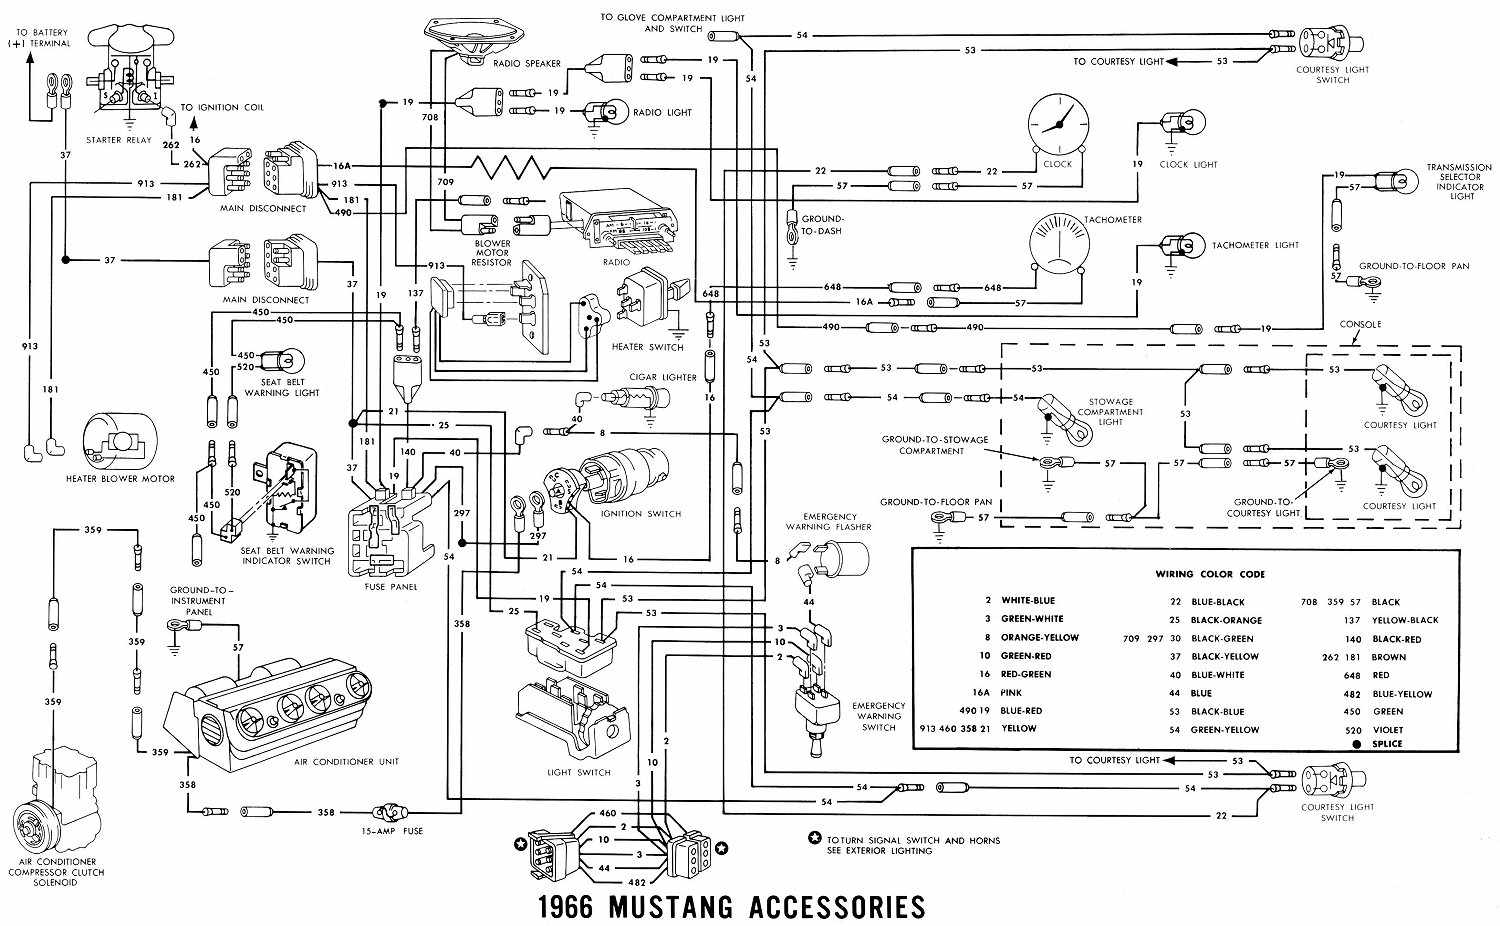 small resolution of 1971 ford mustang wiring diagram data schema u2022 rh serasa co 1970 mustang wiring diagram 1970